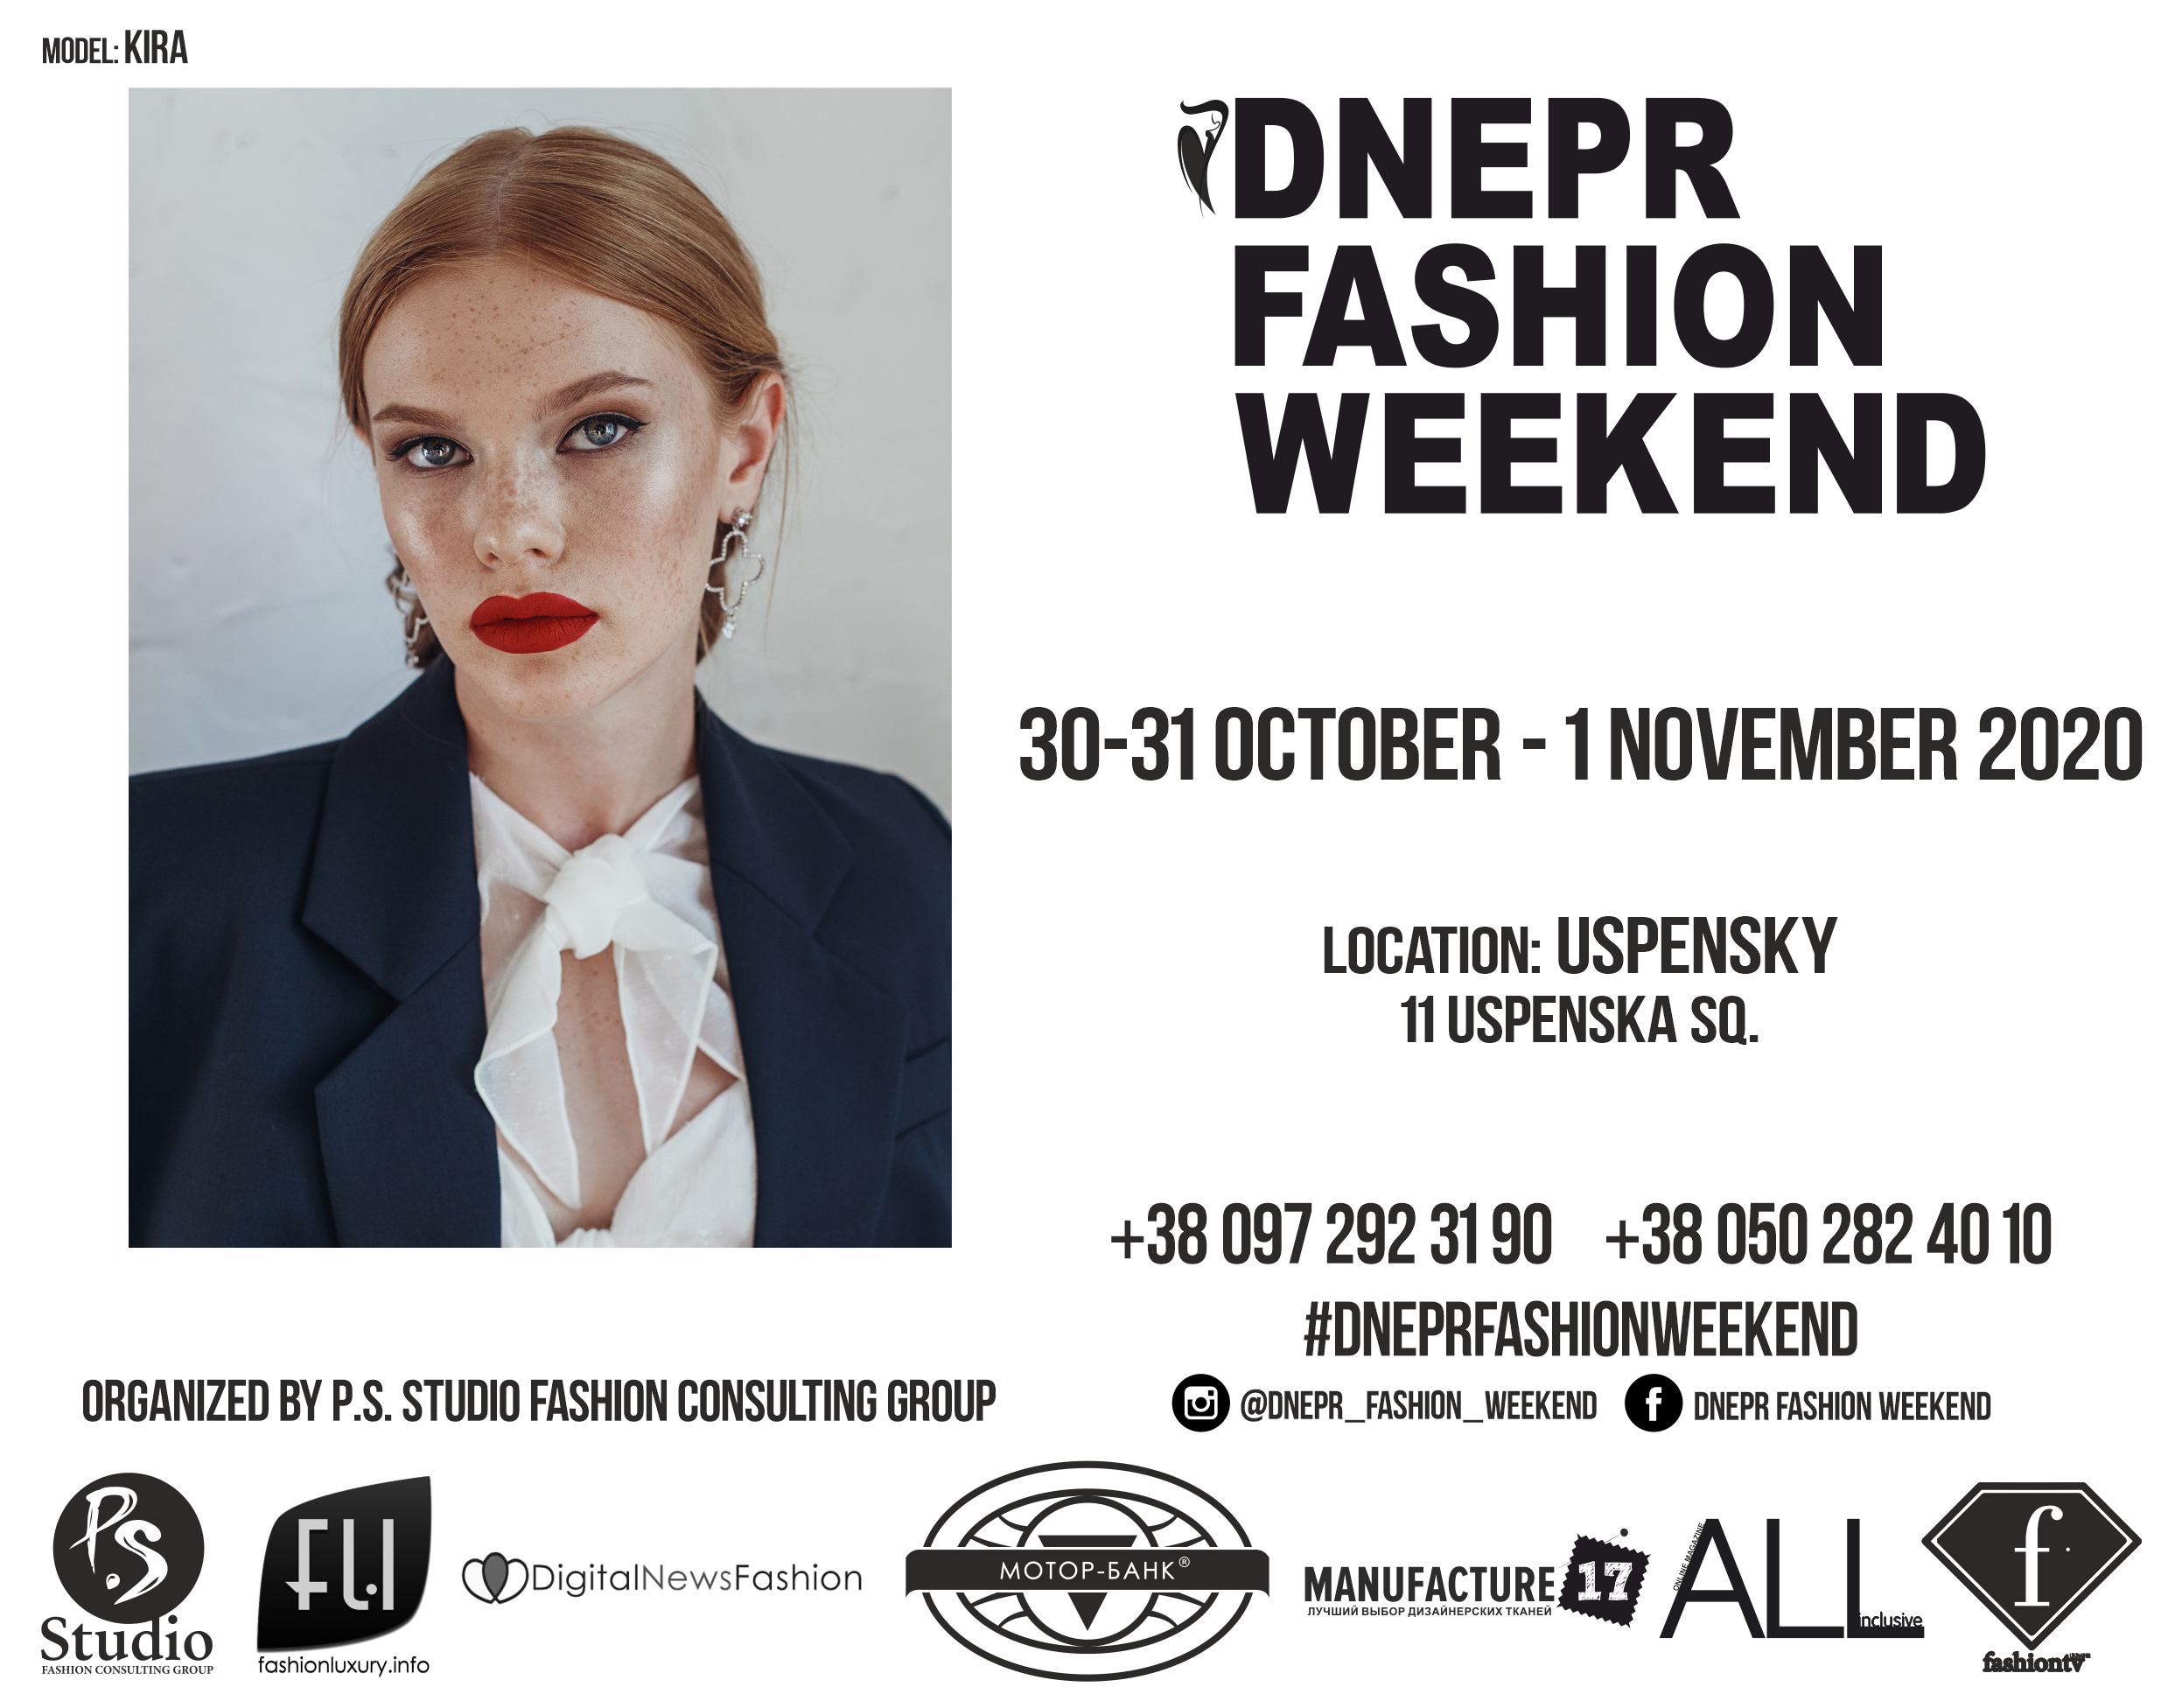 Dnepr Fashion Weekend Announces The Dates Of The New Season 2020